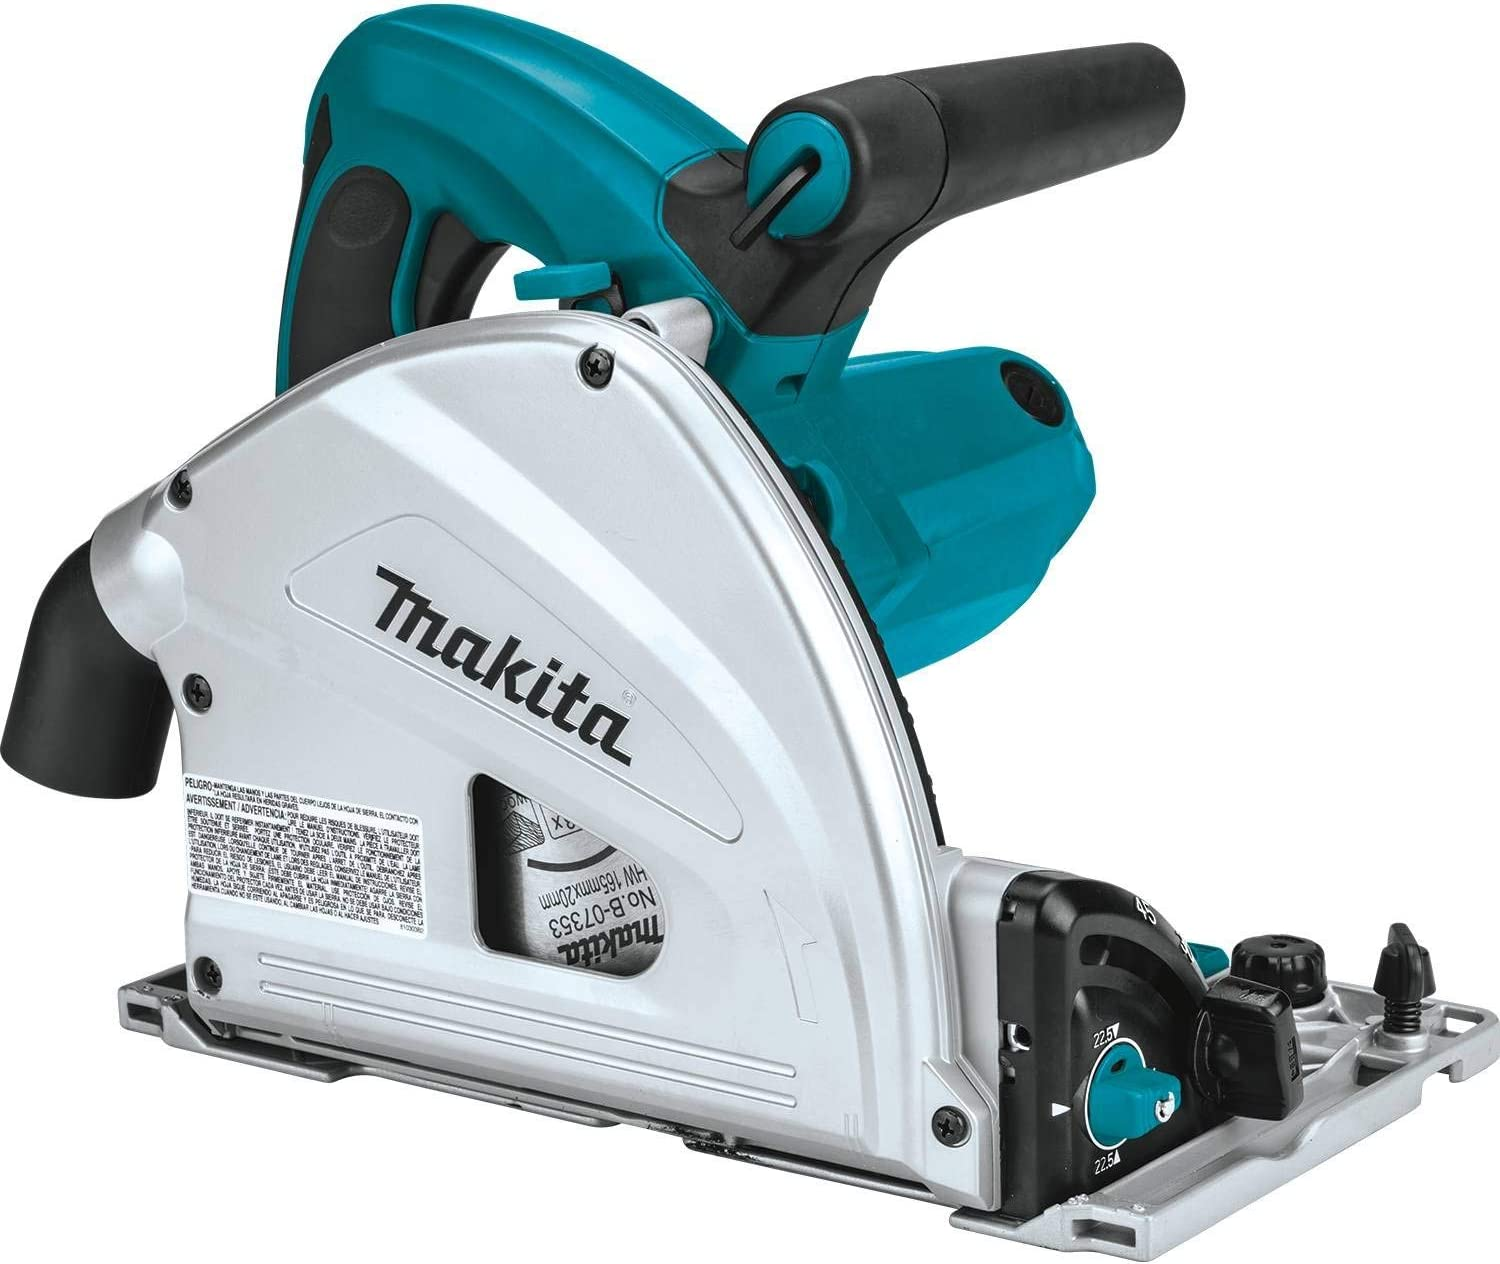 2. Makita SP6000J1 6 1/2 Circular Saw